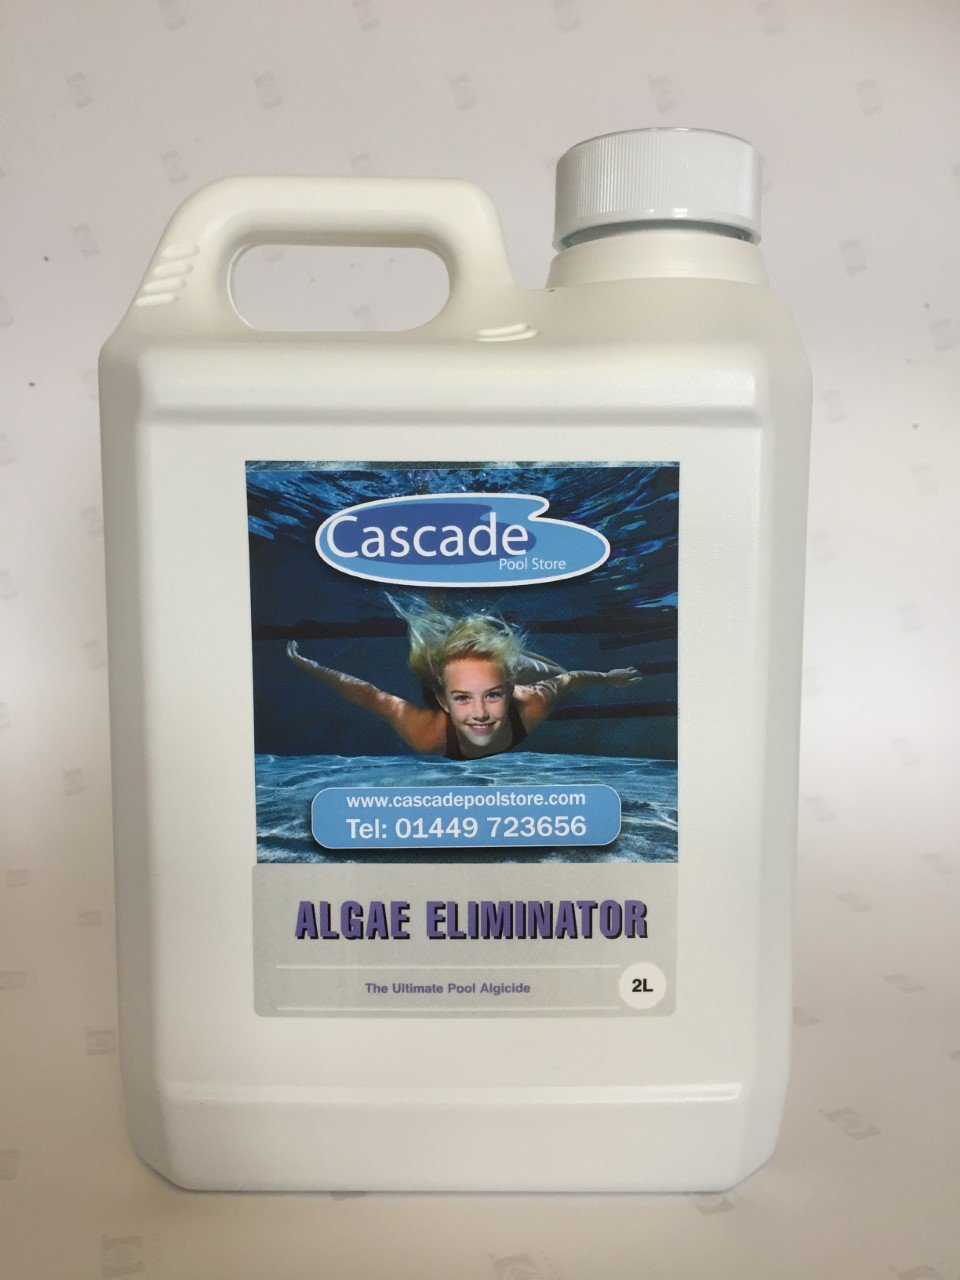 Cascade Pools ALGAE ELIMINATOR 2L - SWIMMING POOL ALGICIDE (FREE DELIVERY)